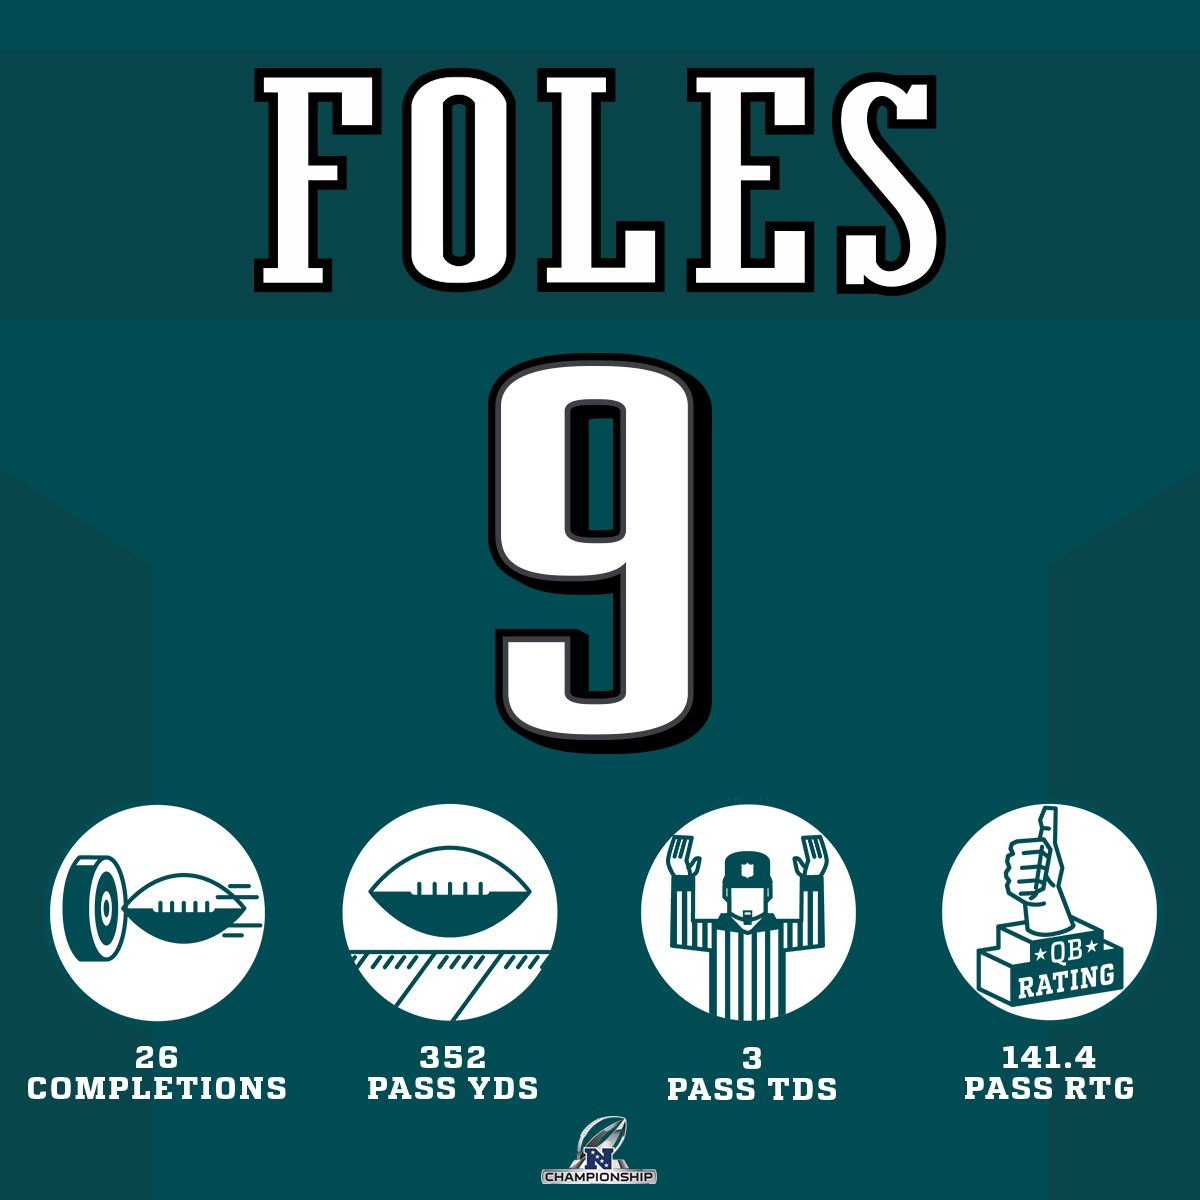 Nick Foles put on a show! #HaveADay #FlyEaglesFly https://t.co/Chc647iGoo